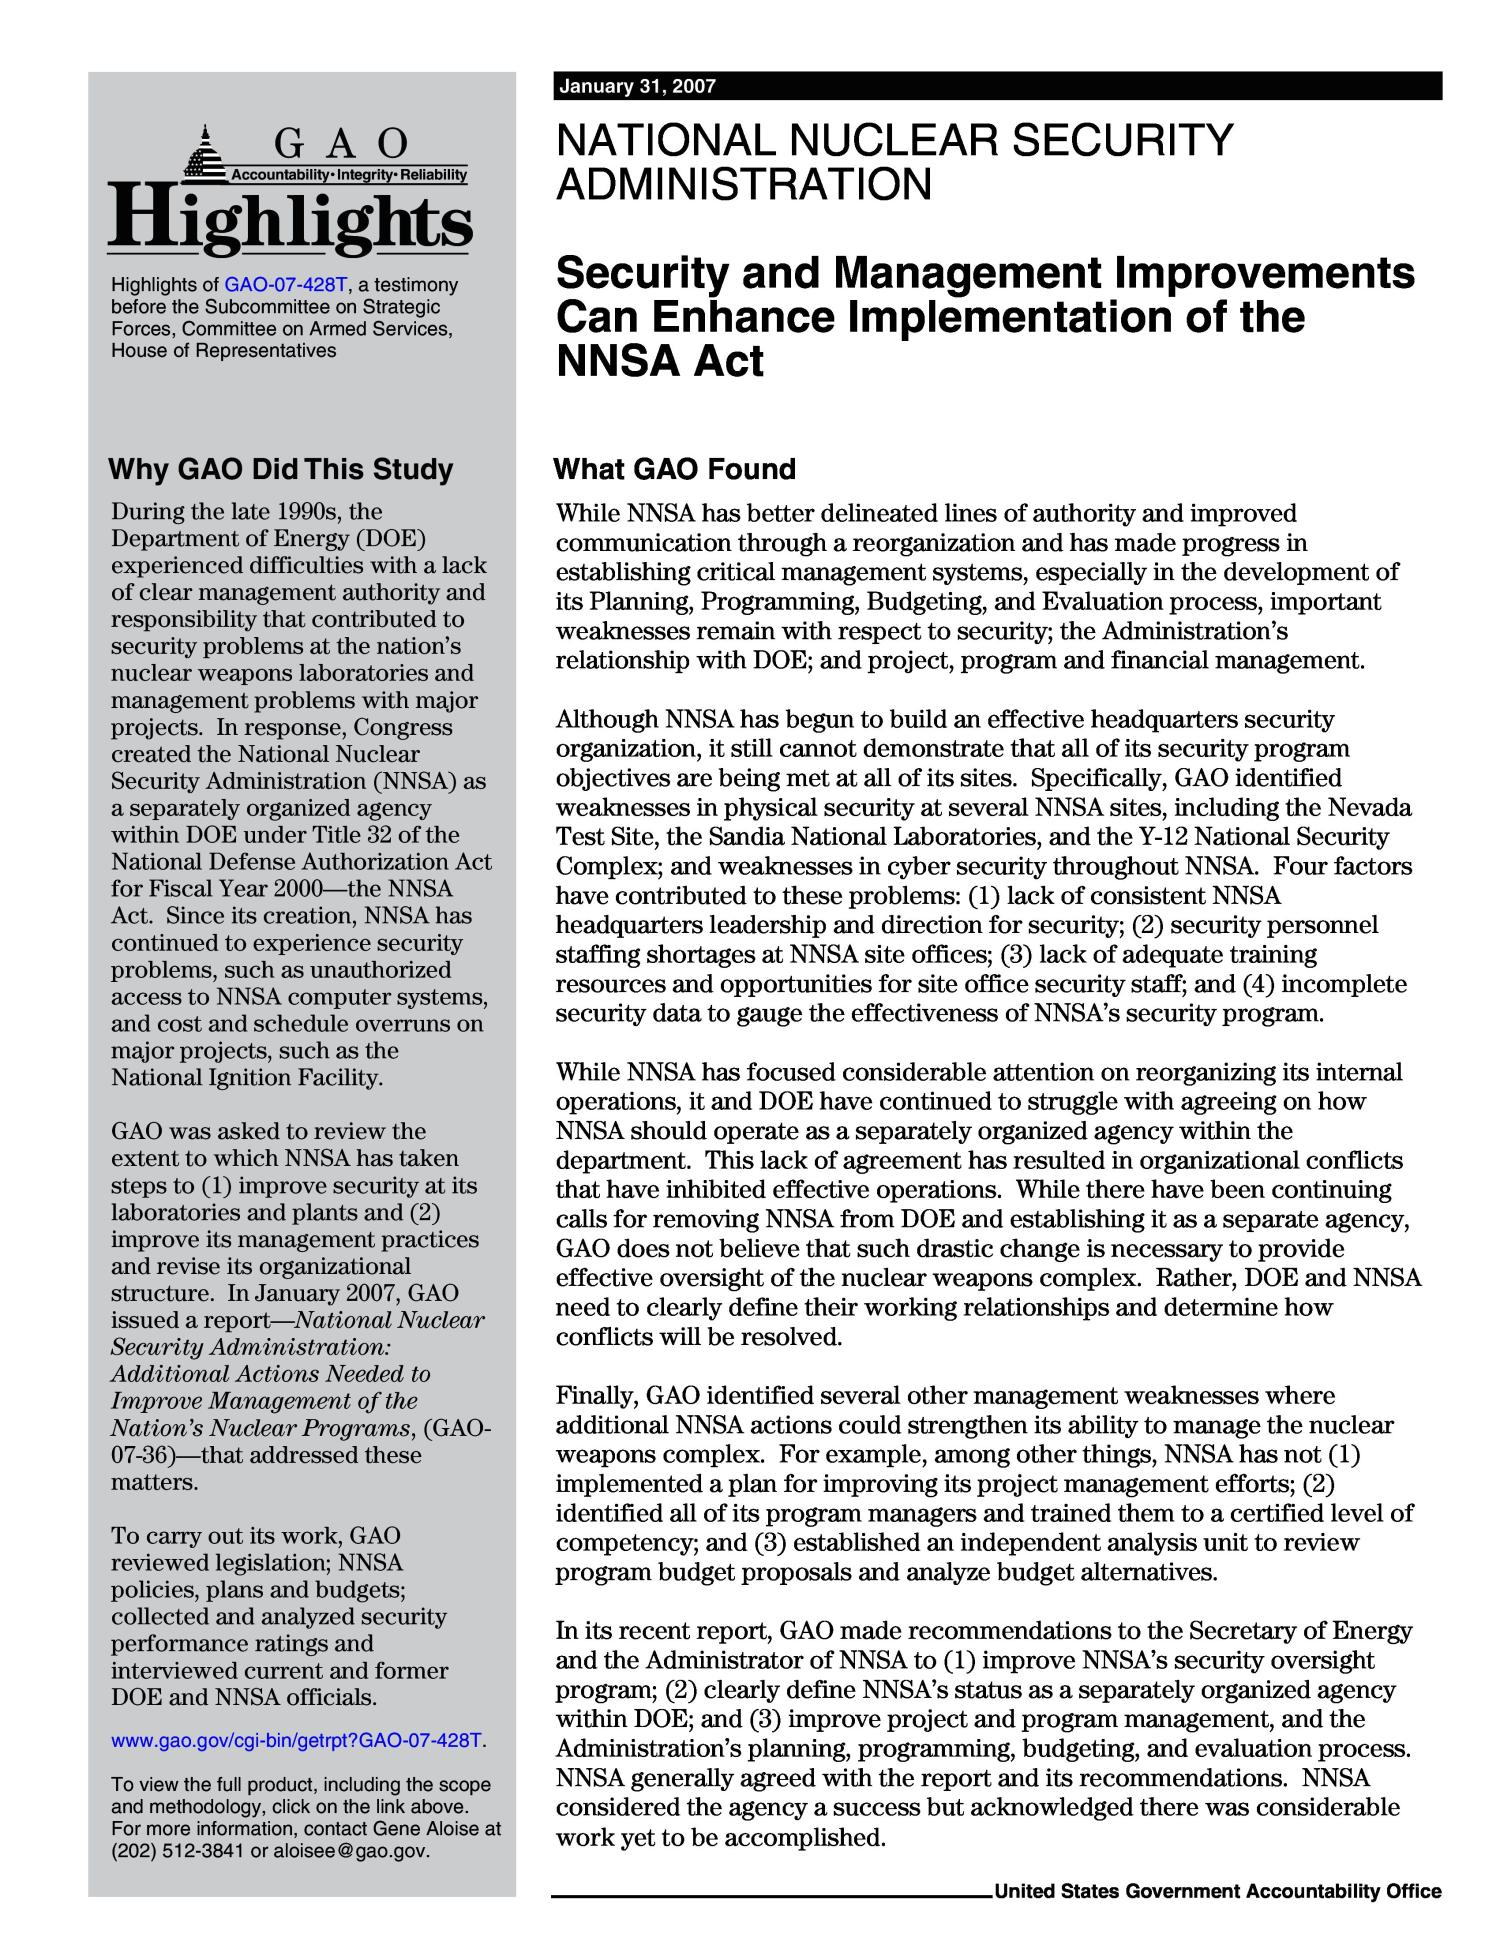 National Nuclear Security Administration: Security and Management Improvements Can Enhance Implementation of the NNSA Act                                                                                                      [Sequence #]: 2 of 15